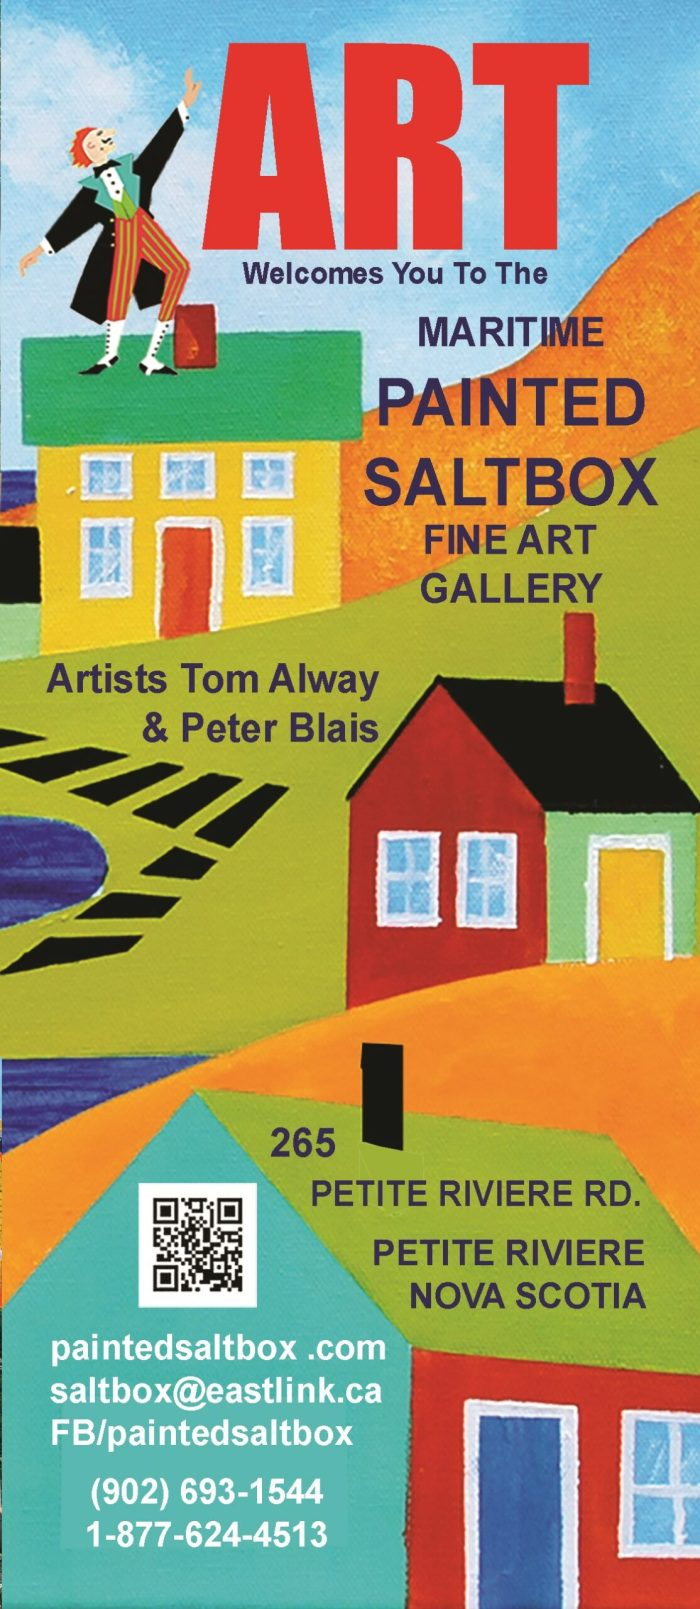 Brochure for the Painted Saltbox Fine Art Gallery for our 23rd season 2021